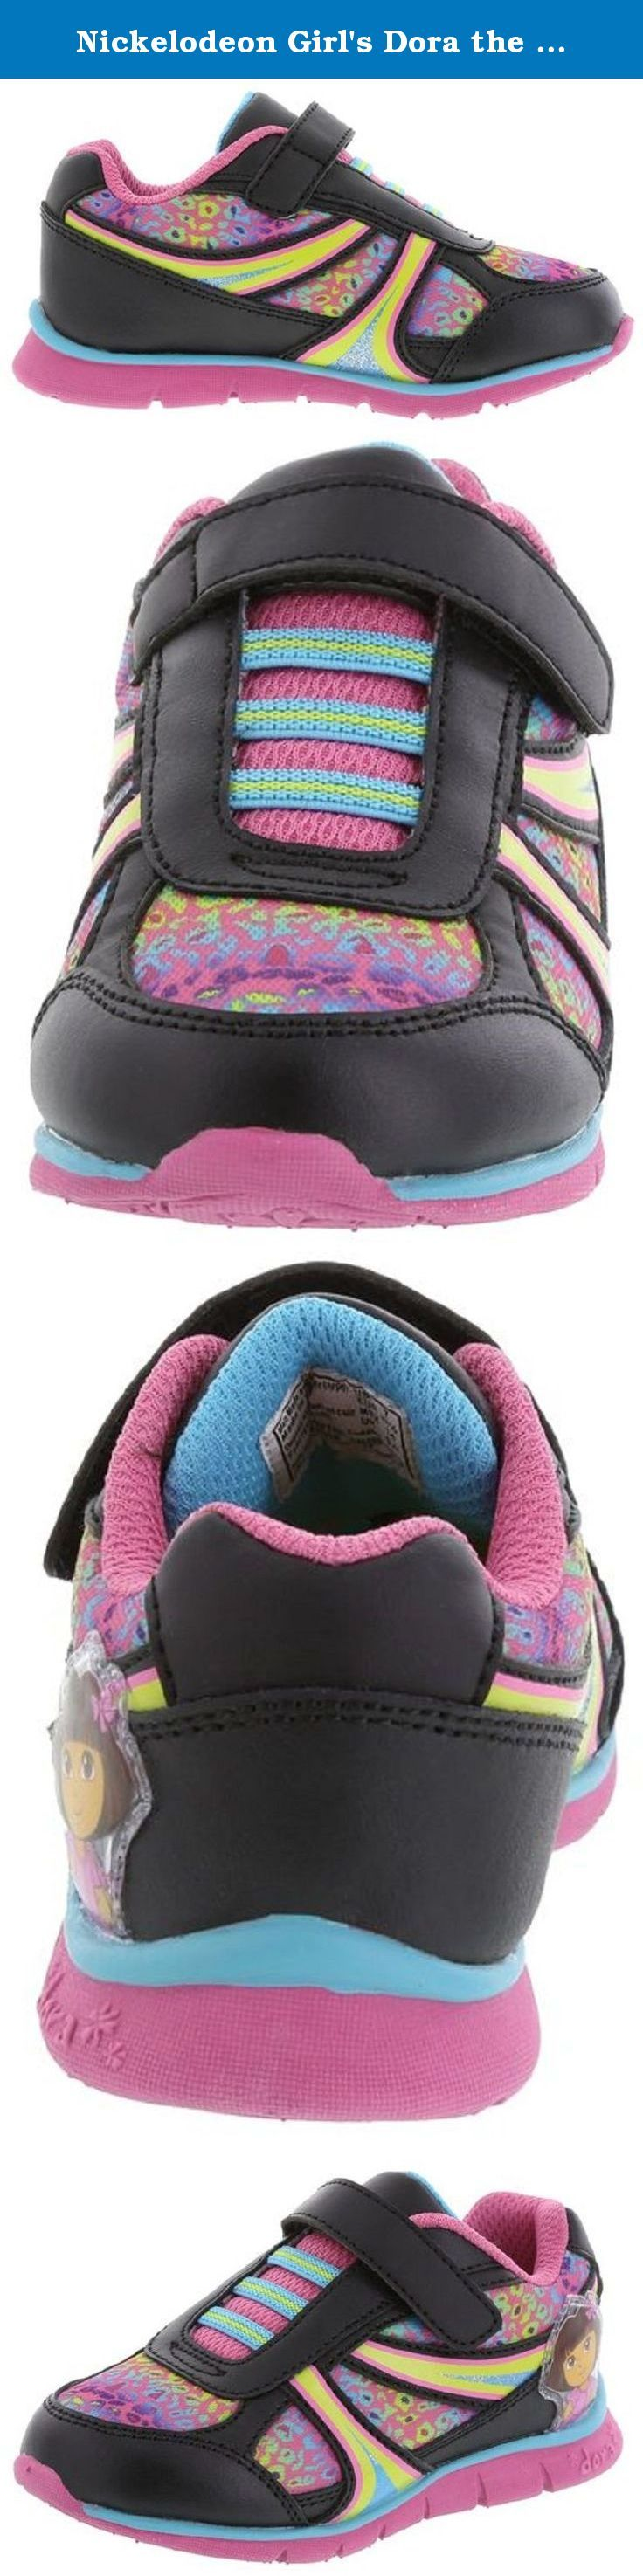 Nickelodeon Girl's Dora the Explorer Lightweight Shoes. Dora makes playtime more fun with this bright runner! It features a combination upper with colorful accents, stretchy laces, strap with hook and loop closure, padded tongue and collar, mesh lining, padded insole, and a non-marking, skid-resistant outsole. Action leather and manmade materials.